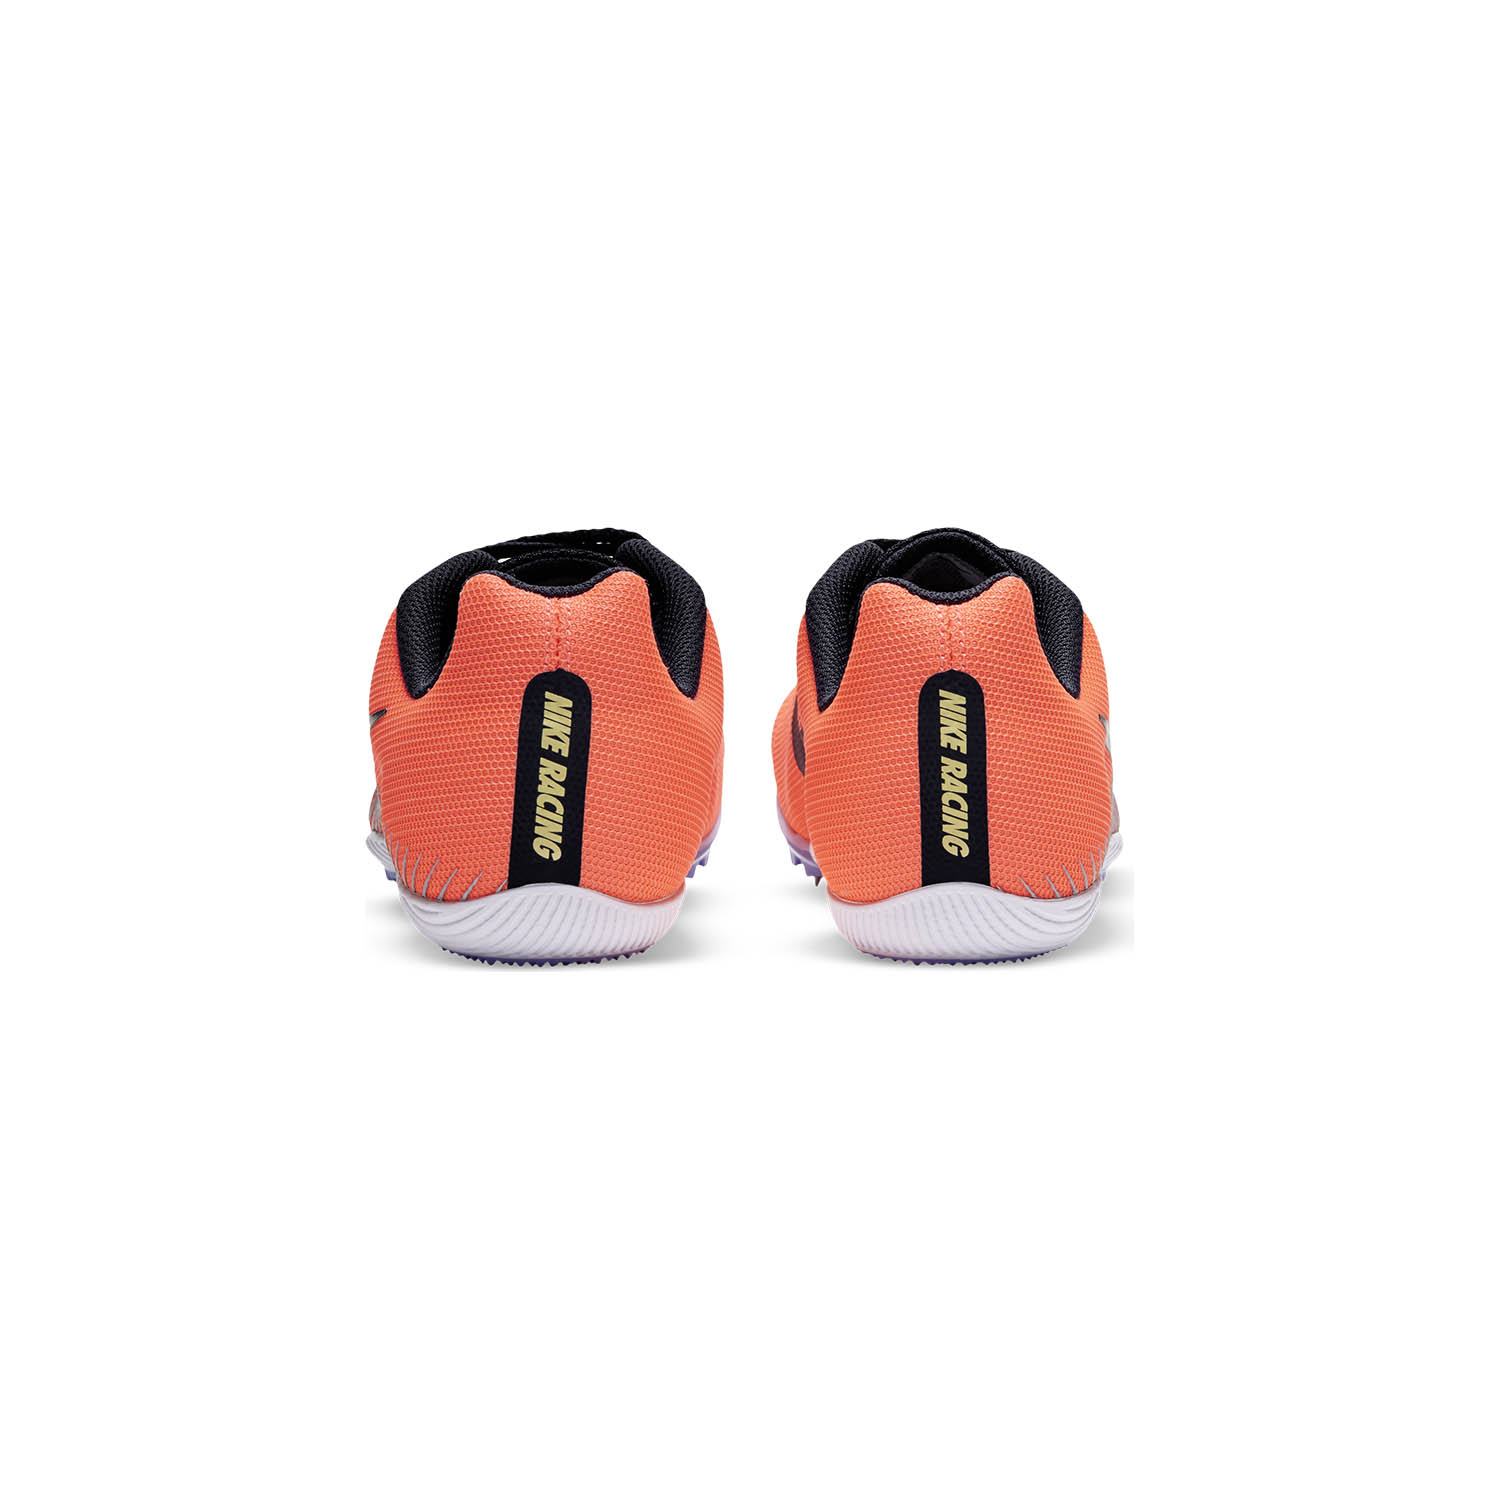 Nike Zoom Rival M9 - Bright Mango/Blackened Blue